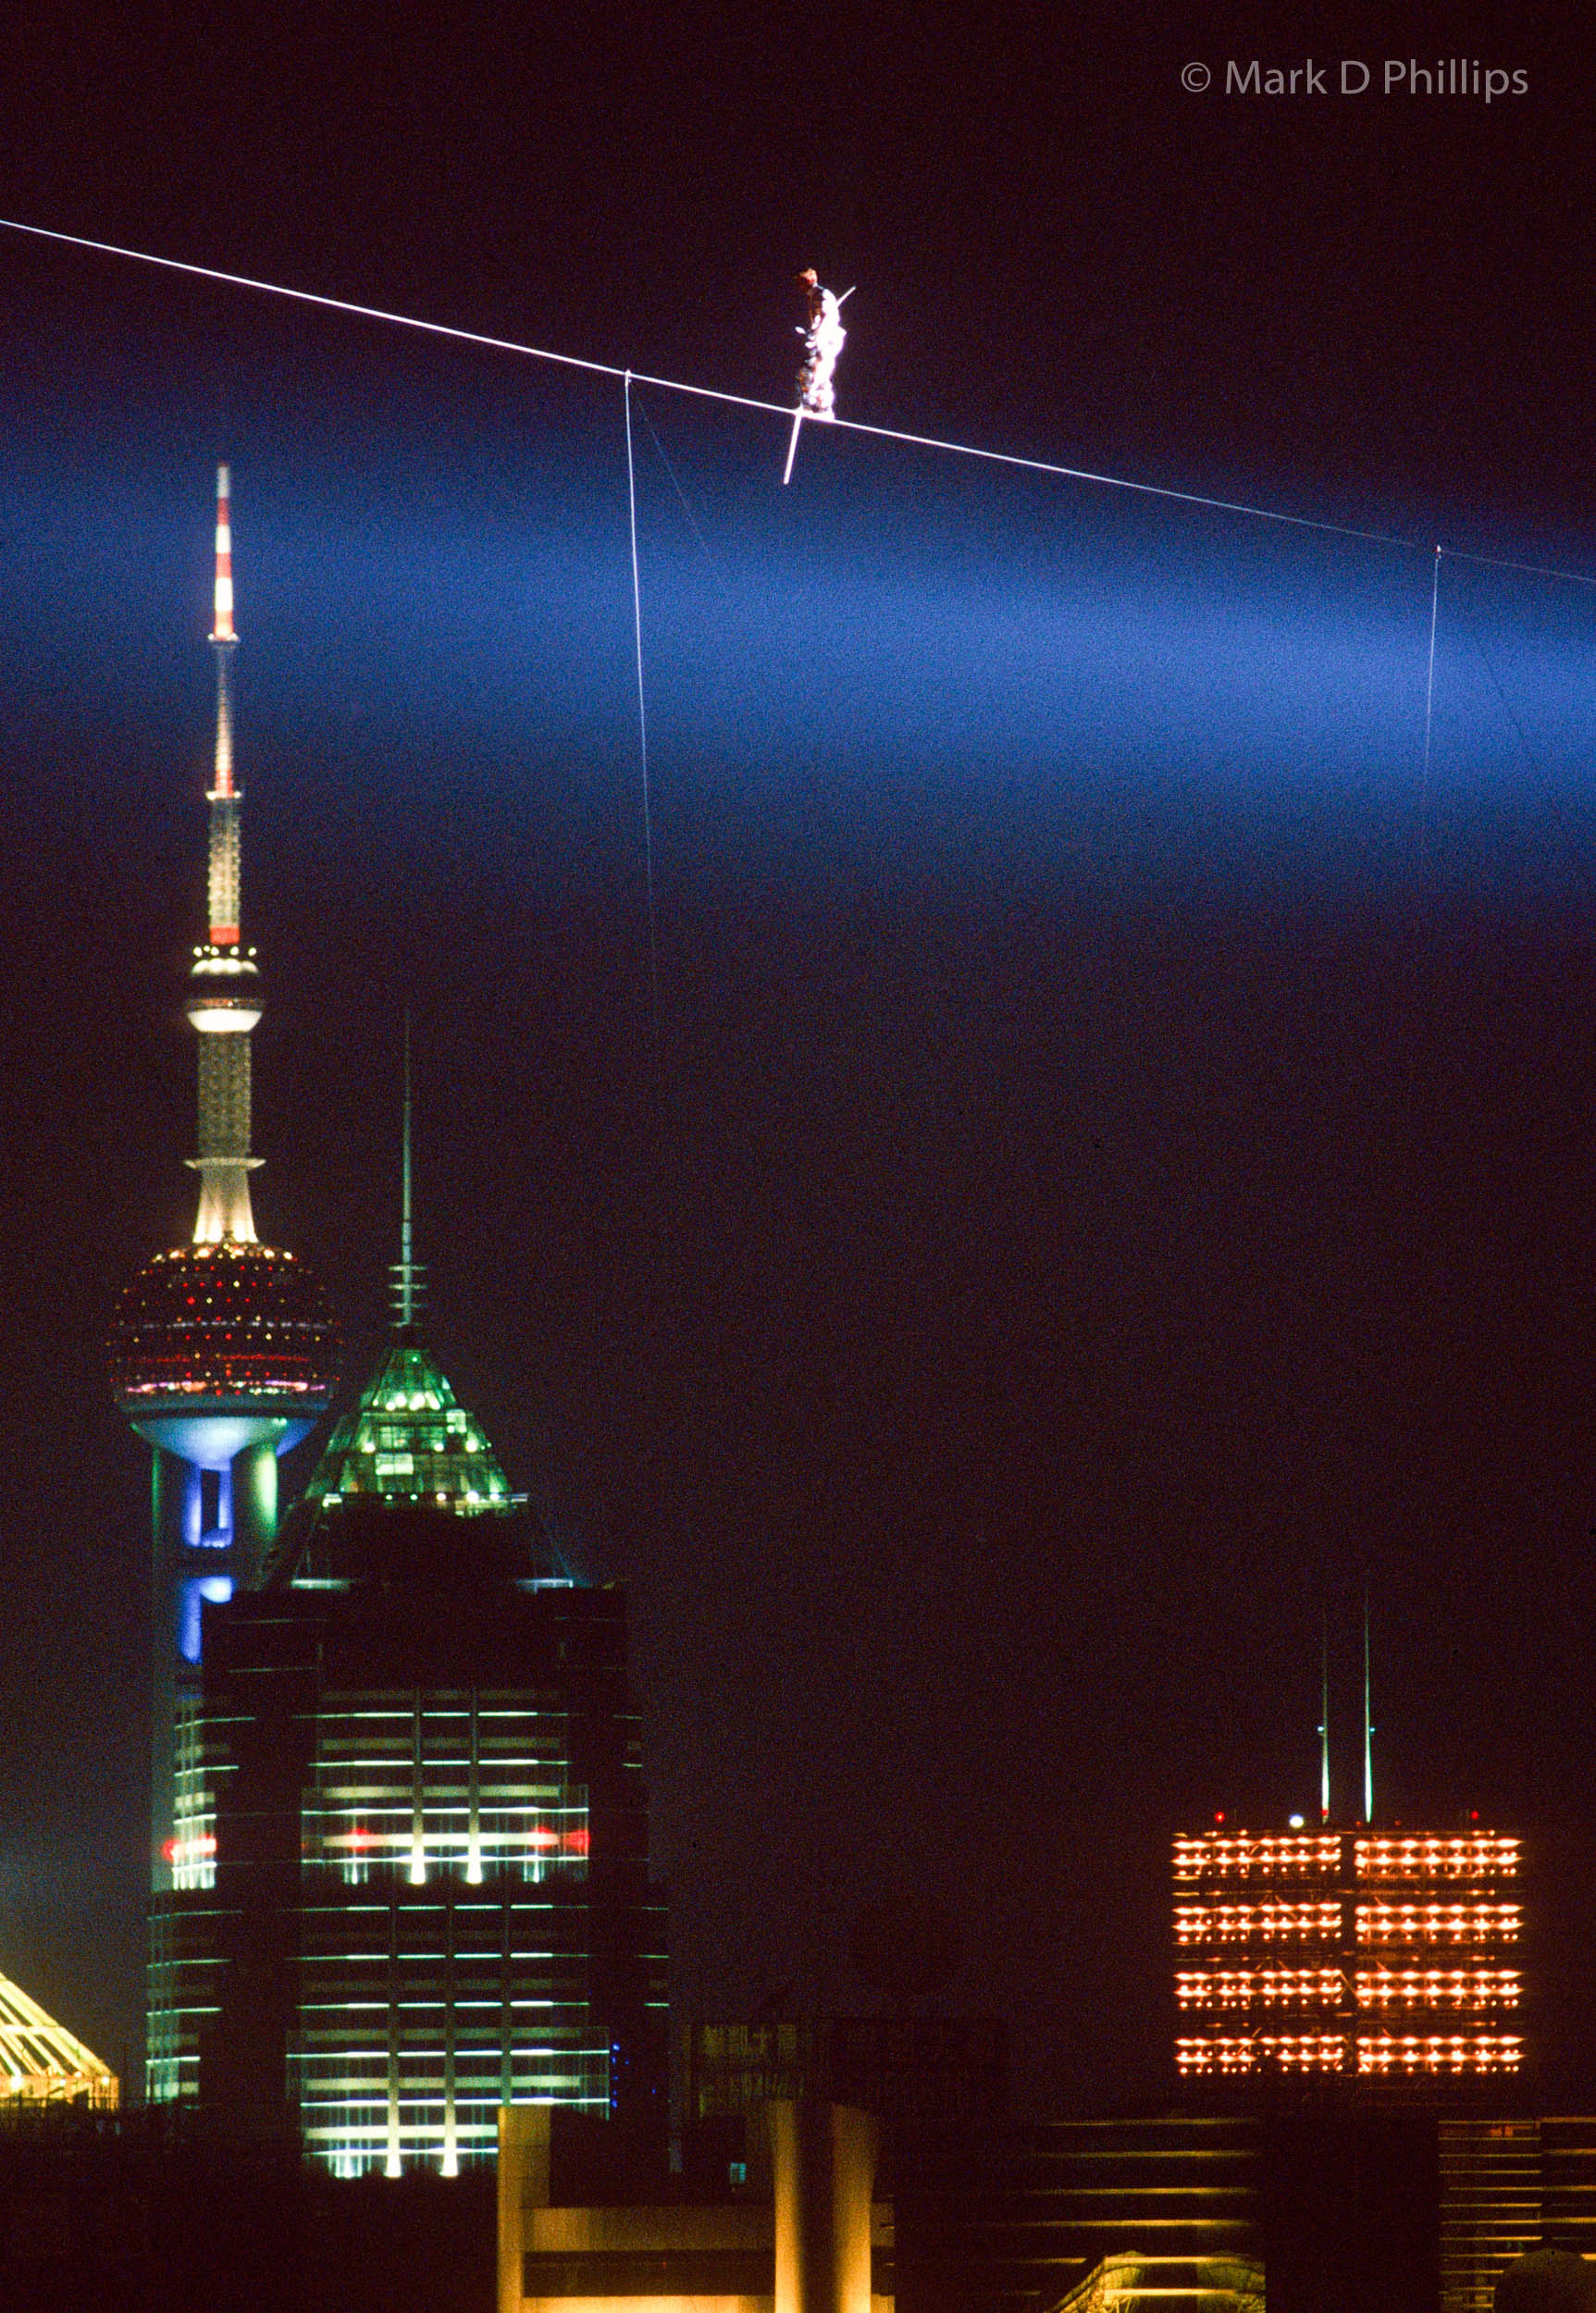 Jay Cochrane skywalks in Shanghai, China, for the opening night of the Shanghai Tourism Festival on September 24, 1996, passing above the Pearl of the Orient tower in the Pudong district. ©Mark D Phillips